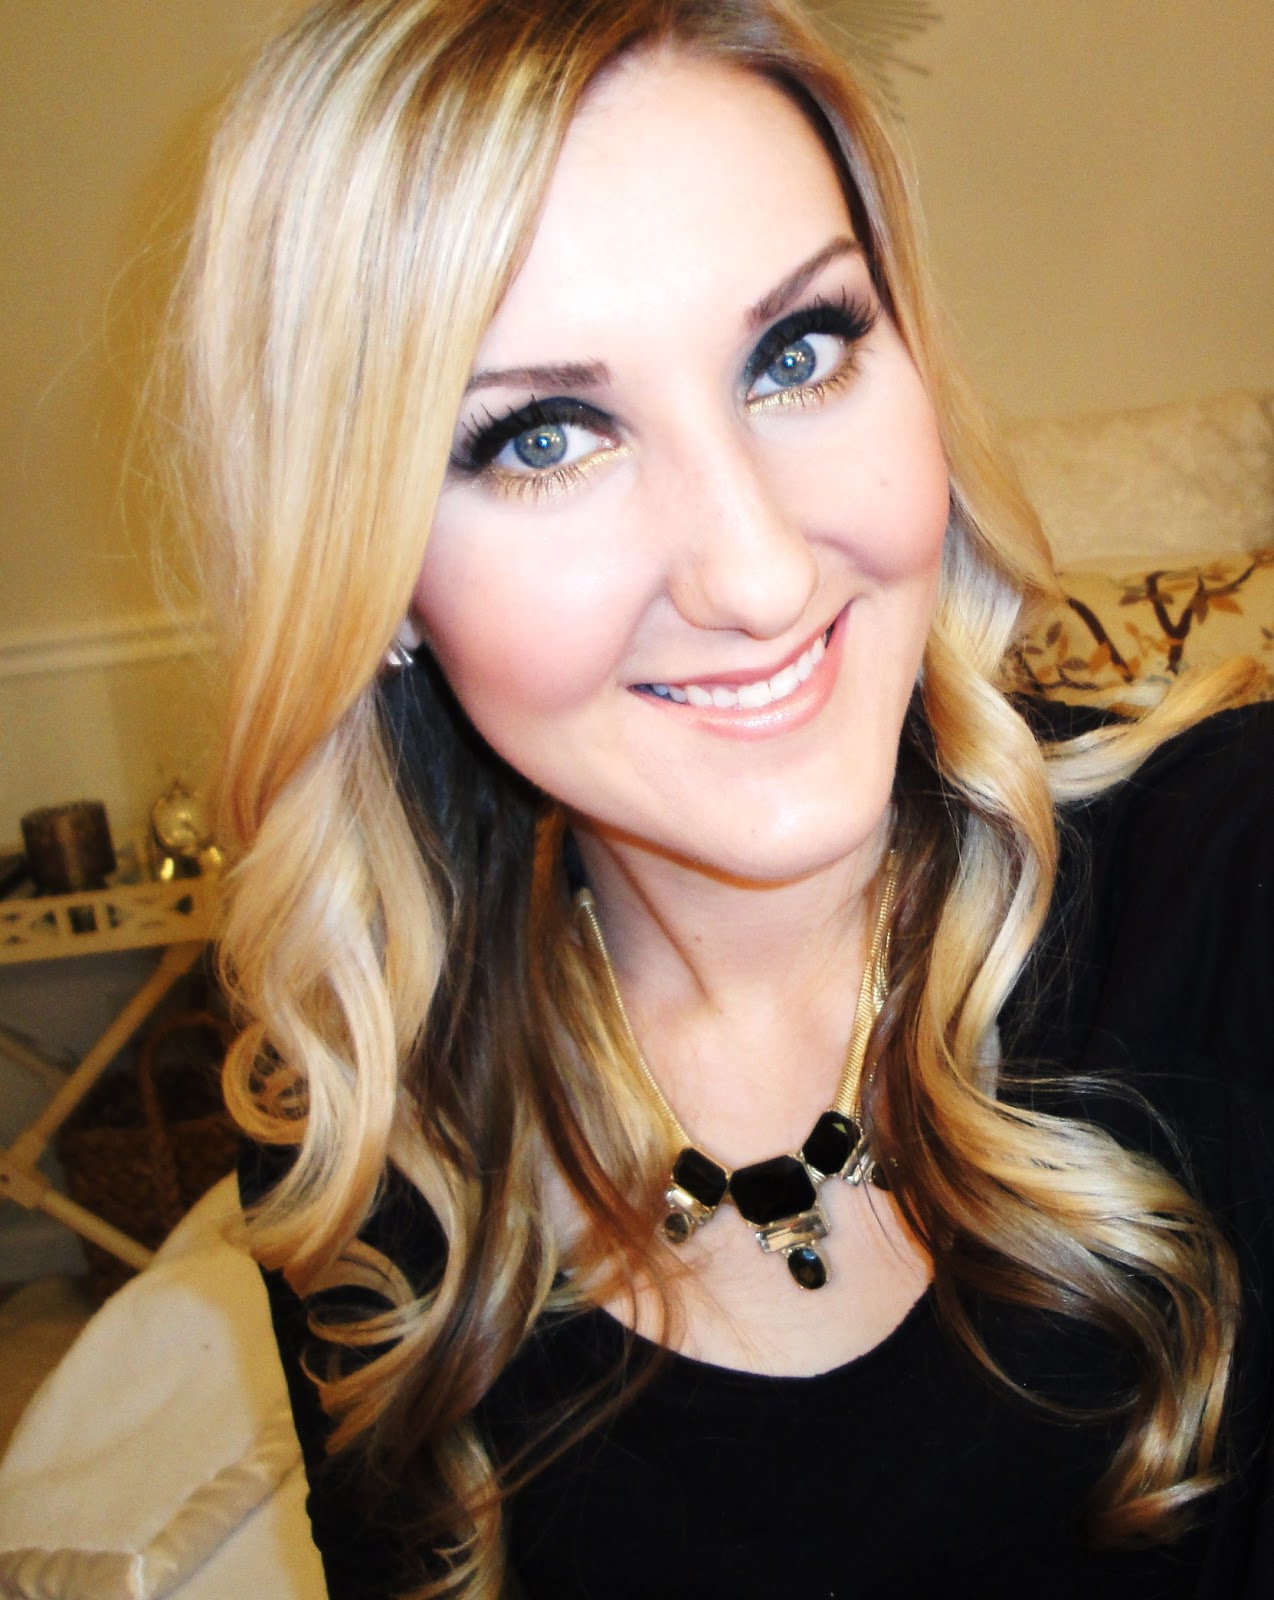 TiffanyD: New Yearu0026#39;s Eve Makeup Tutorial and Outfit